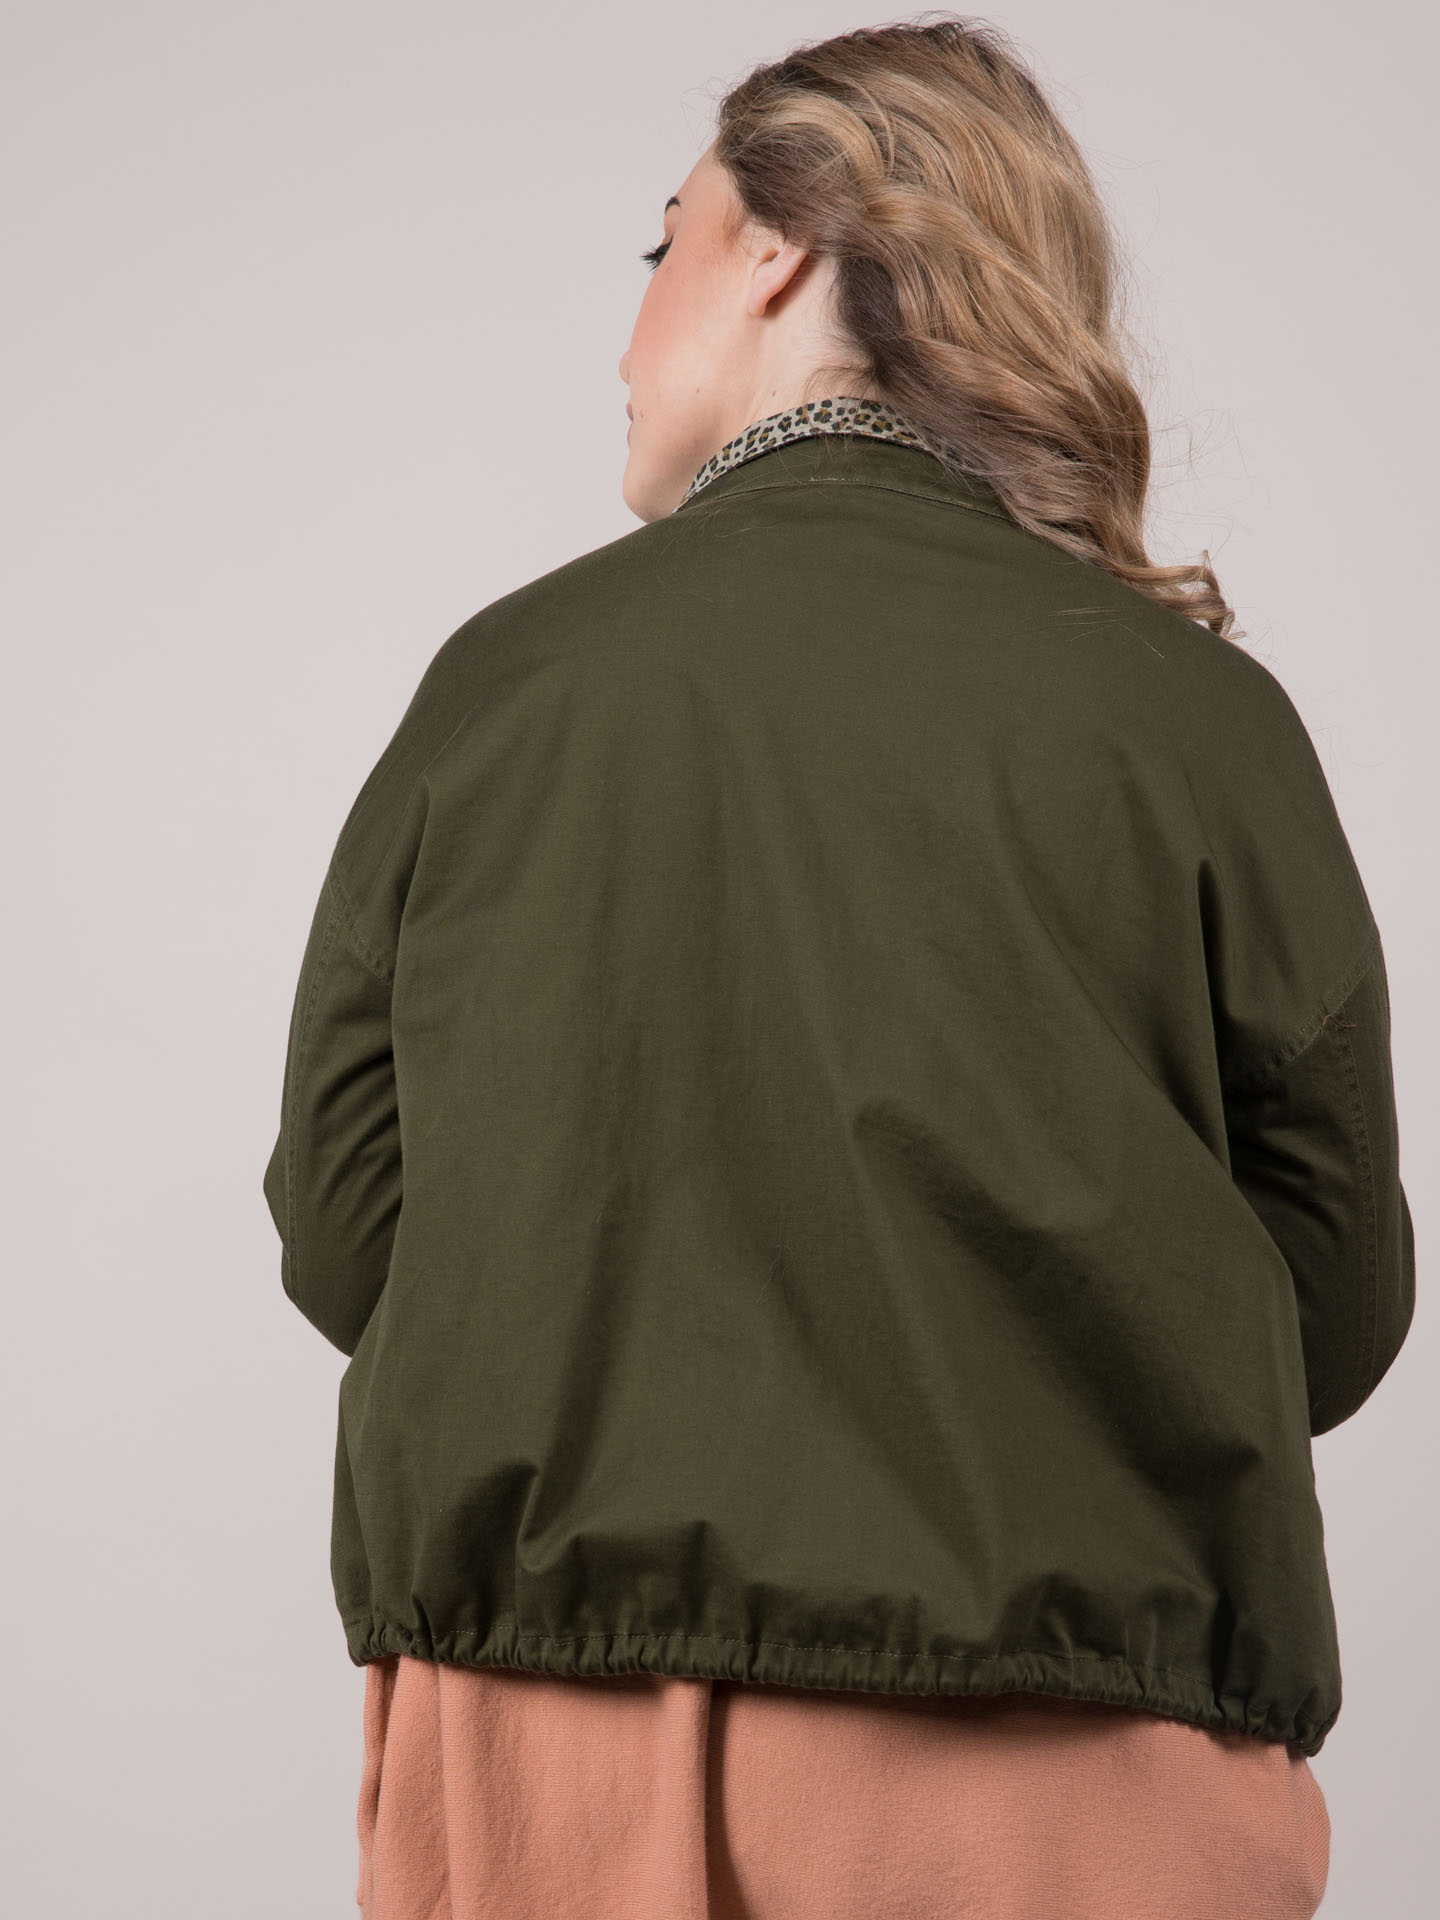 Wendy Jacket Cheetah Lined Olive